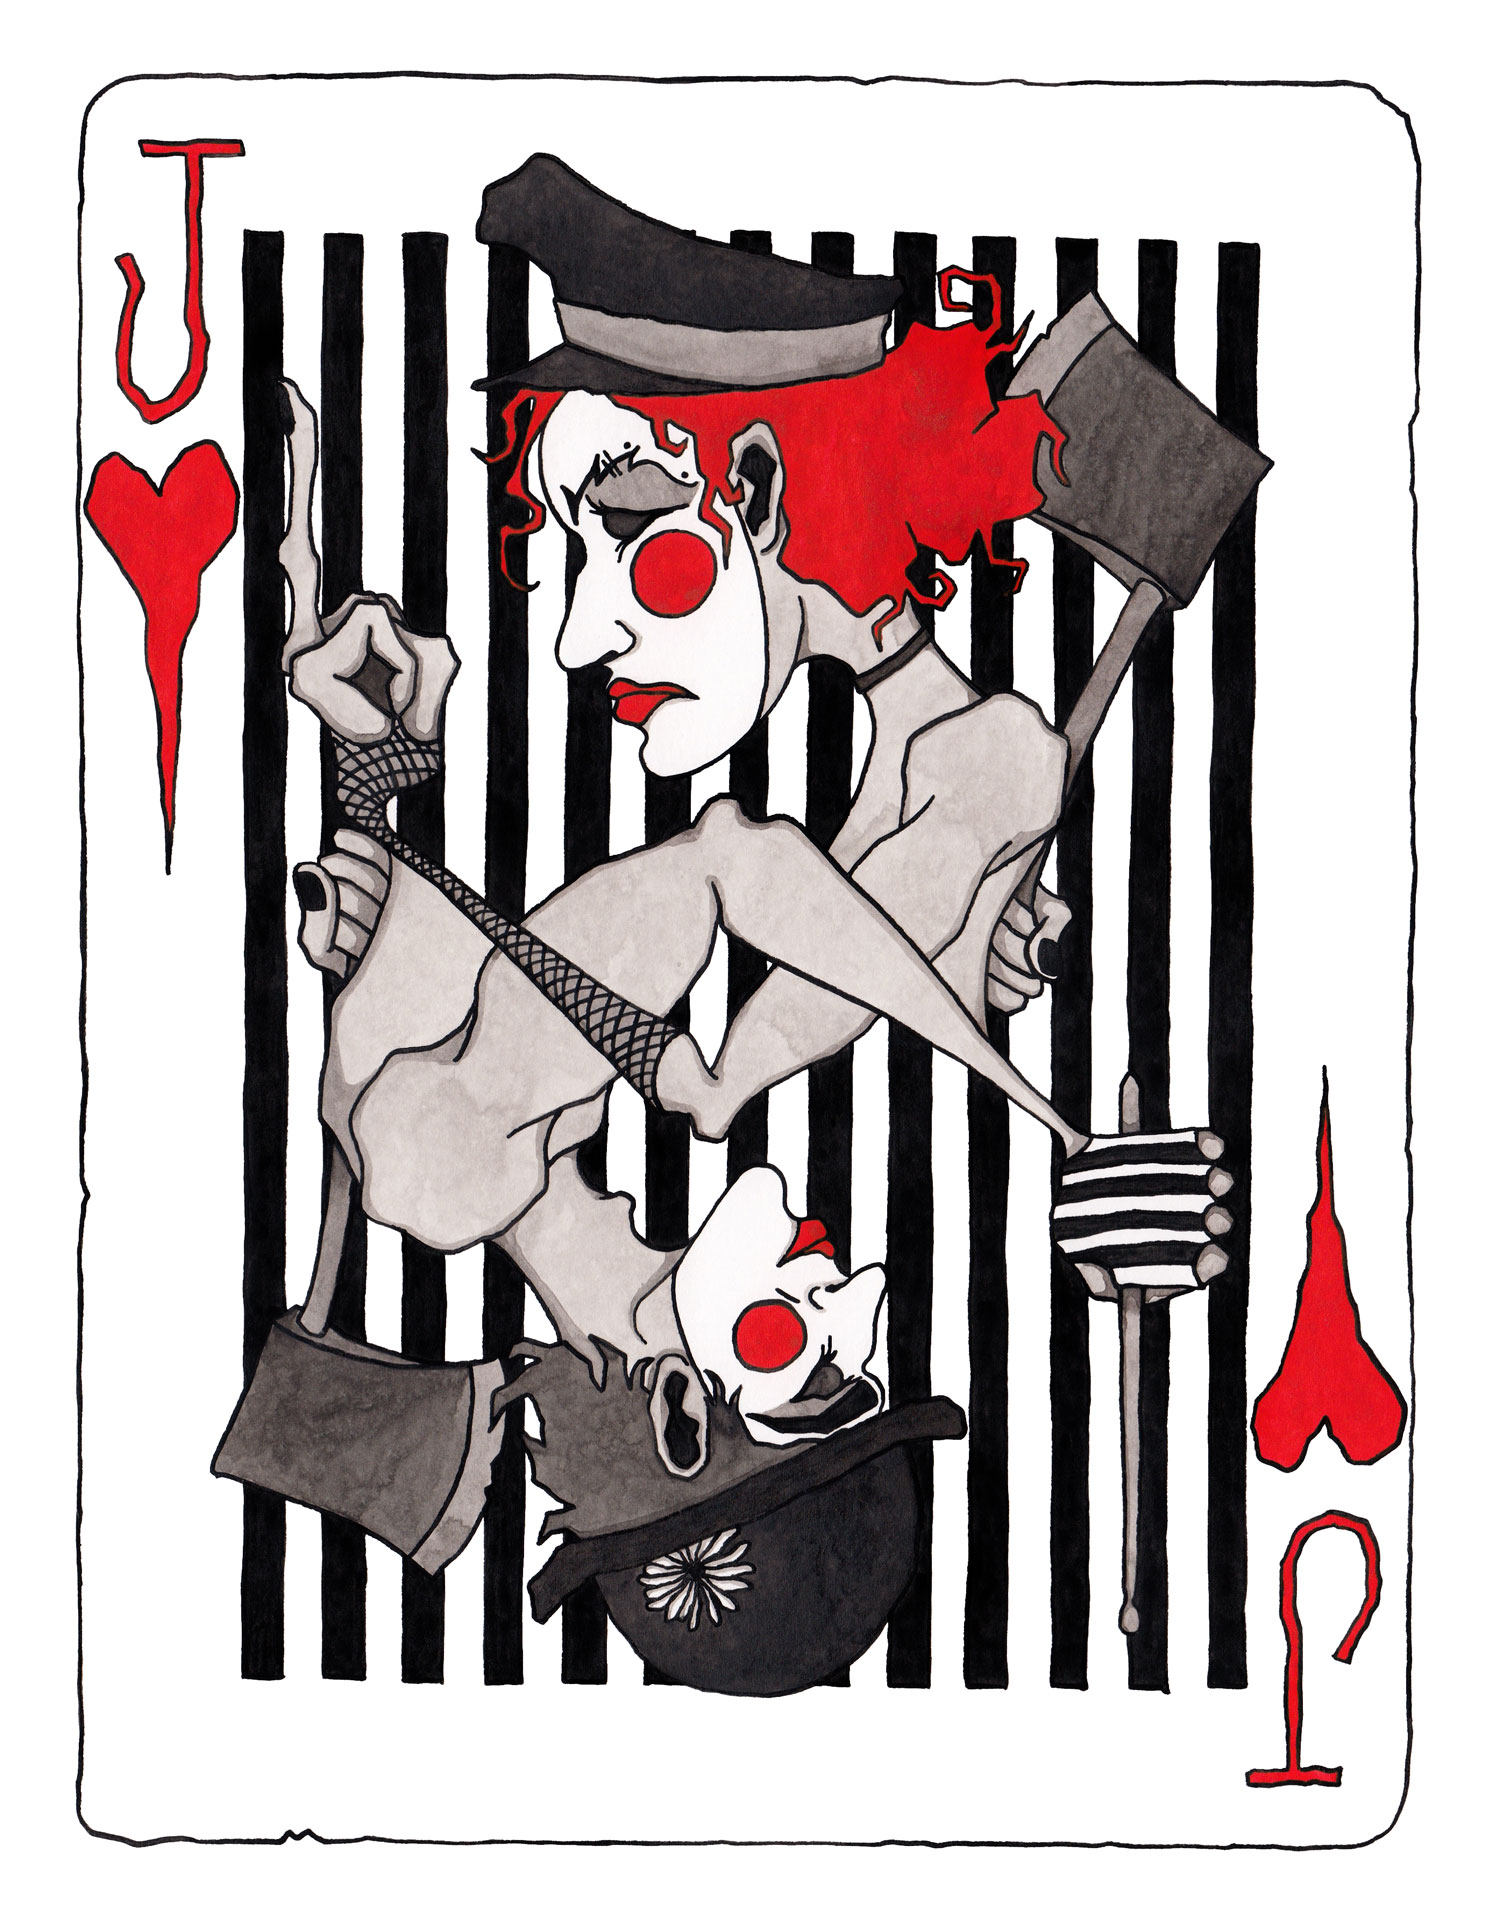 half-jack-dresden-dolls-jack-of-hearts-playing-card-illustration-matthew-woods.jpg